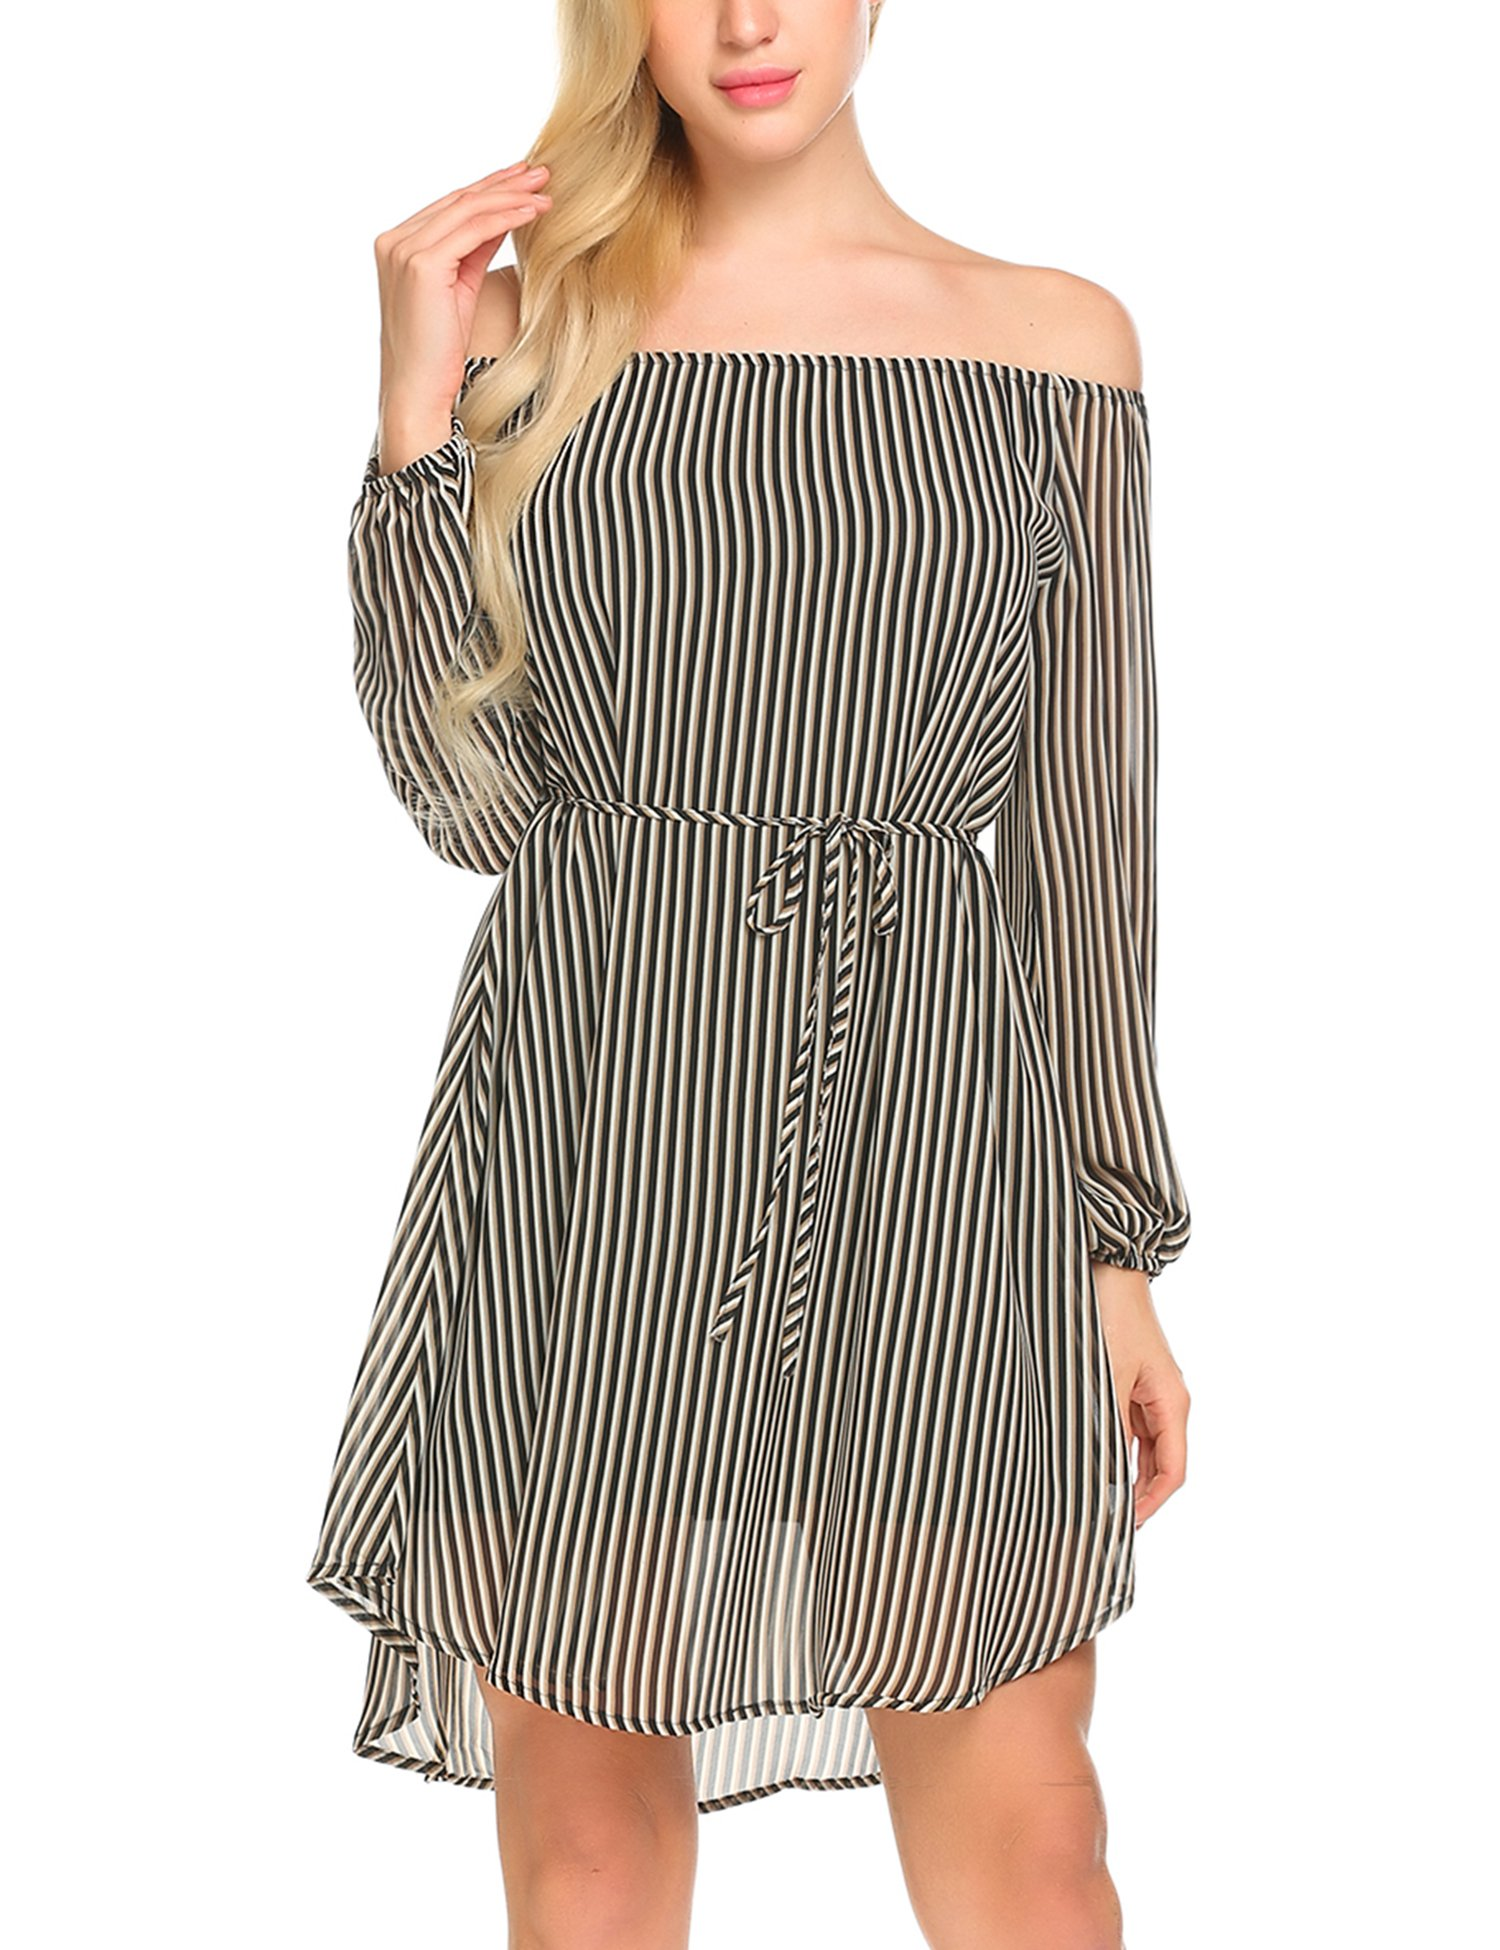 Jeere Women's Long Sleeve Off The Shoulder Striped Causal Loose T-Shirt Dress Black L